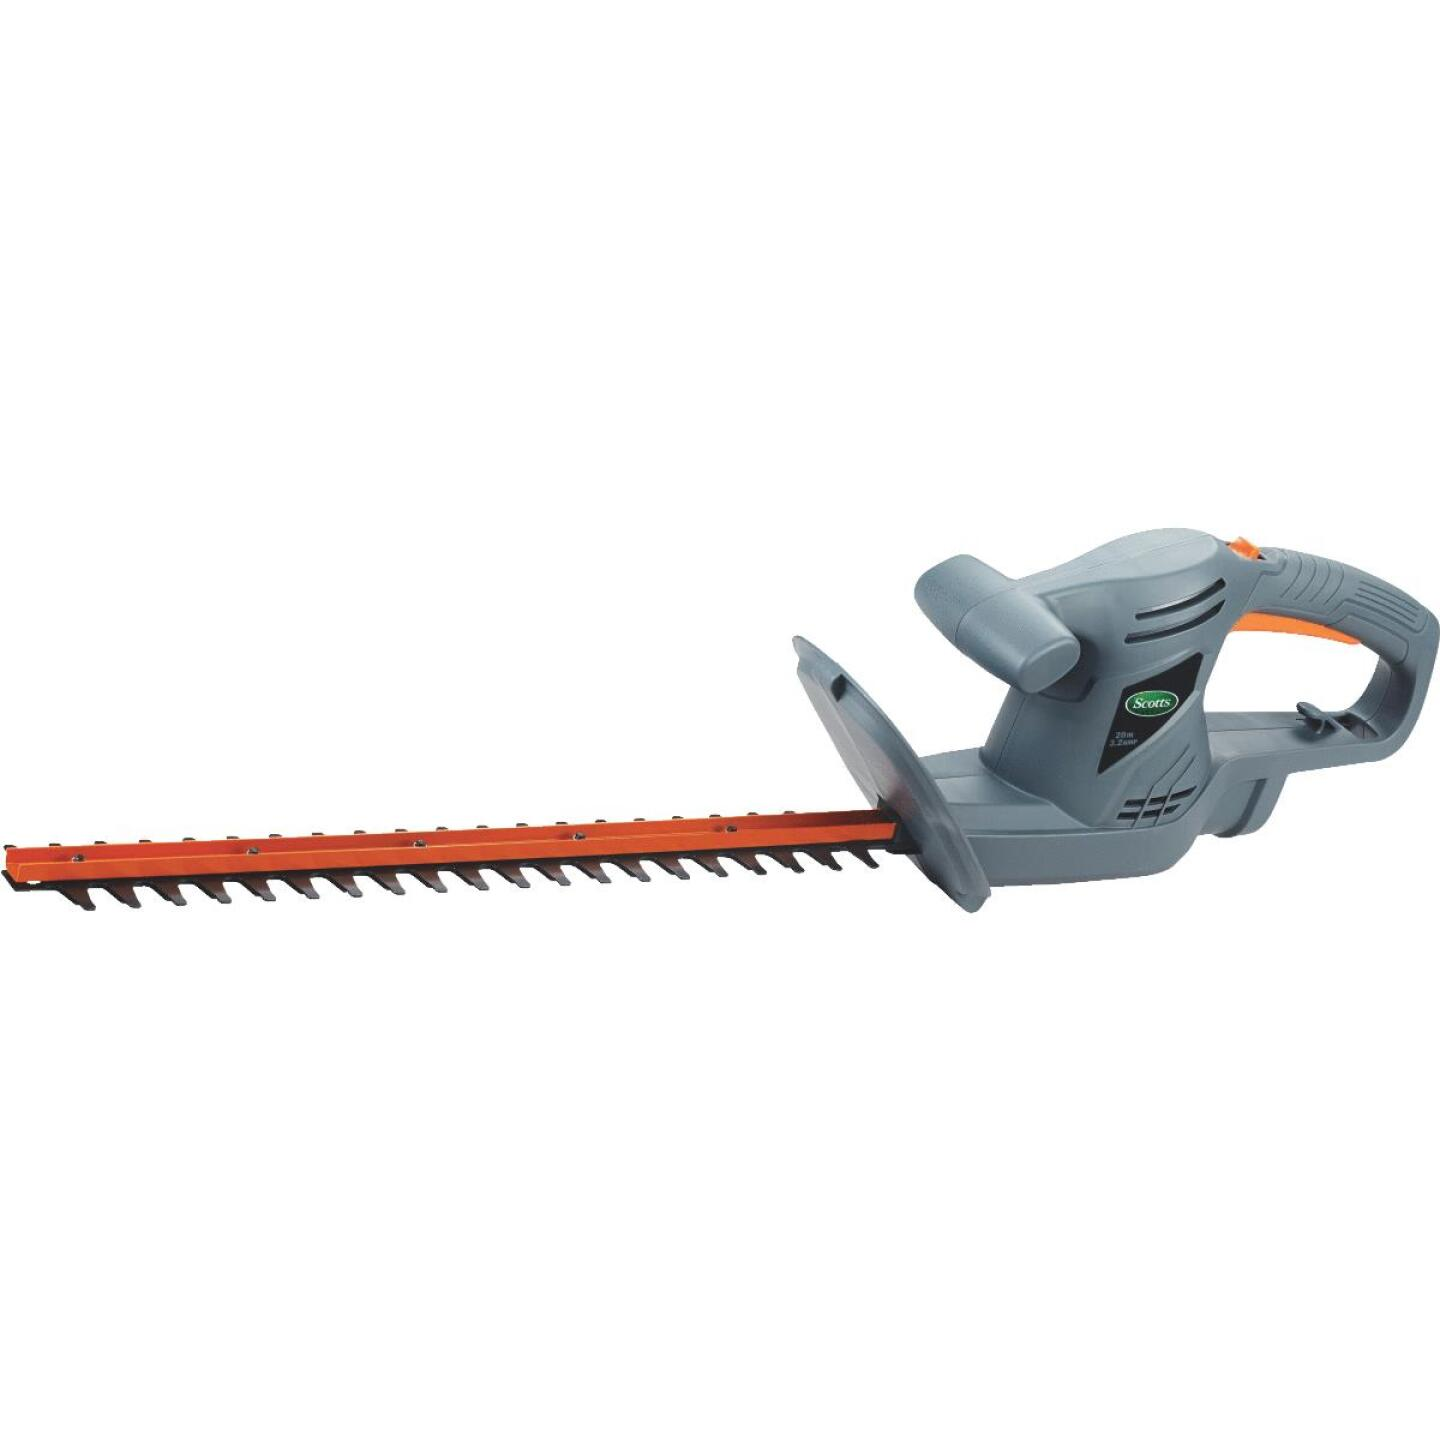 Scotts 20 In. Corded Electric Hedge Trimmer Image 1